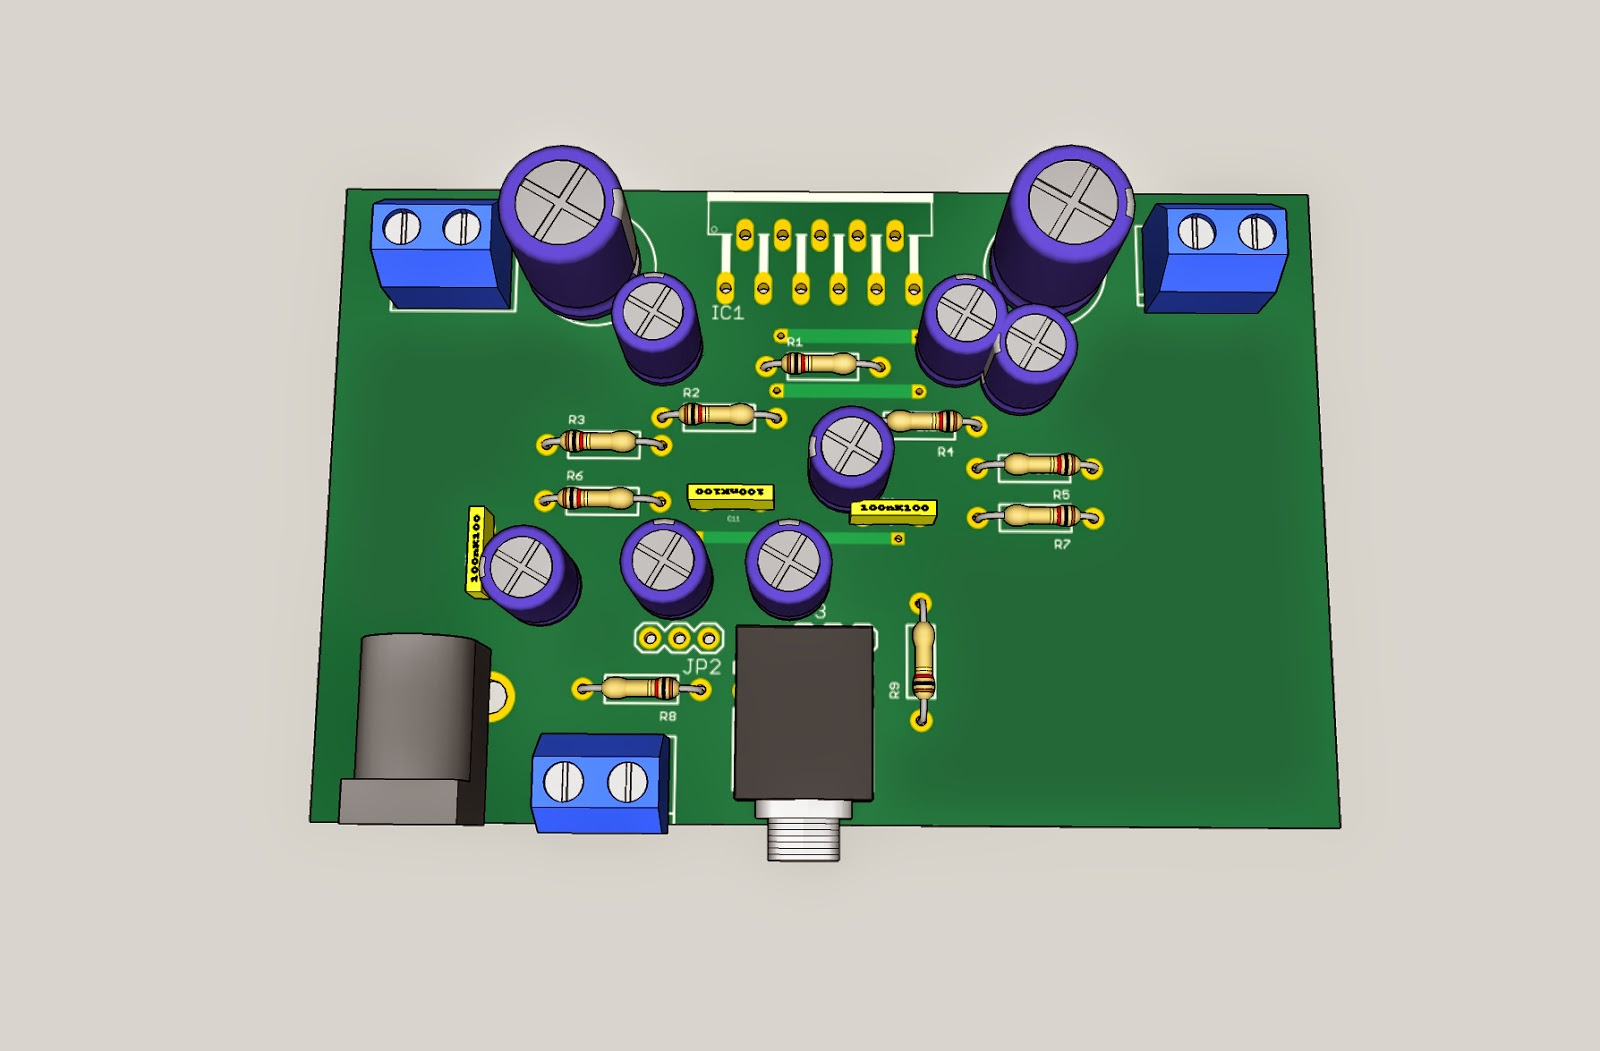 Tda2005 Power Amplifier Circuit Electronic Kit T Circuits Tda2009 2x10w Stereo Mini And Explanation Here Is The Pcb Etched Drilled Ready For Component Population